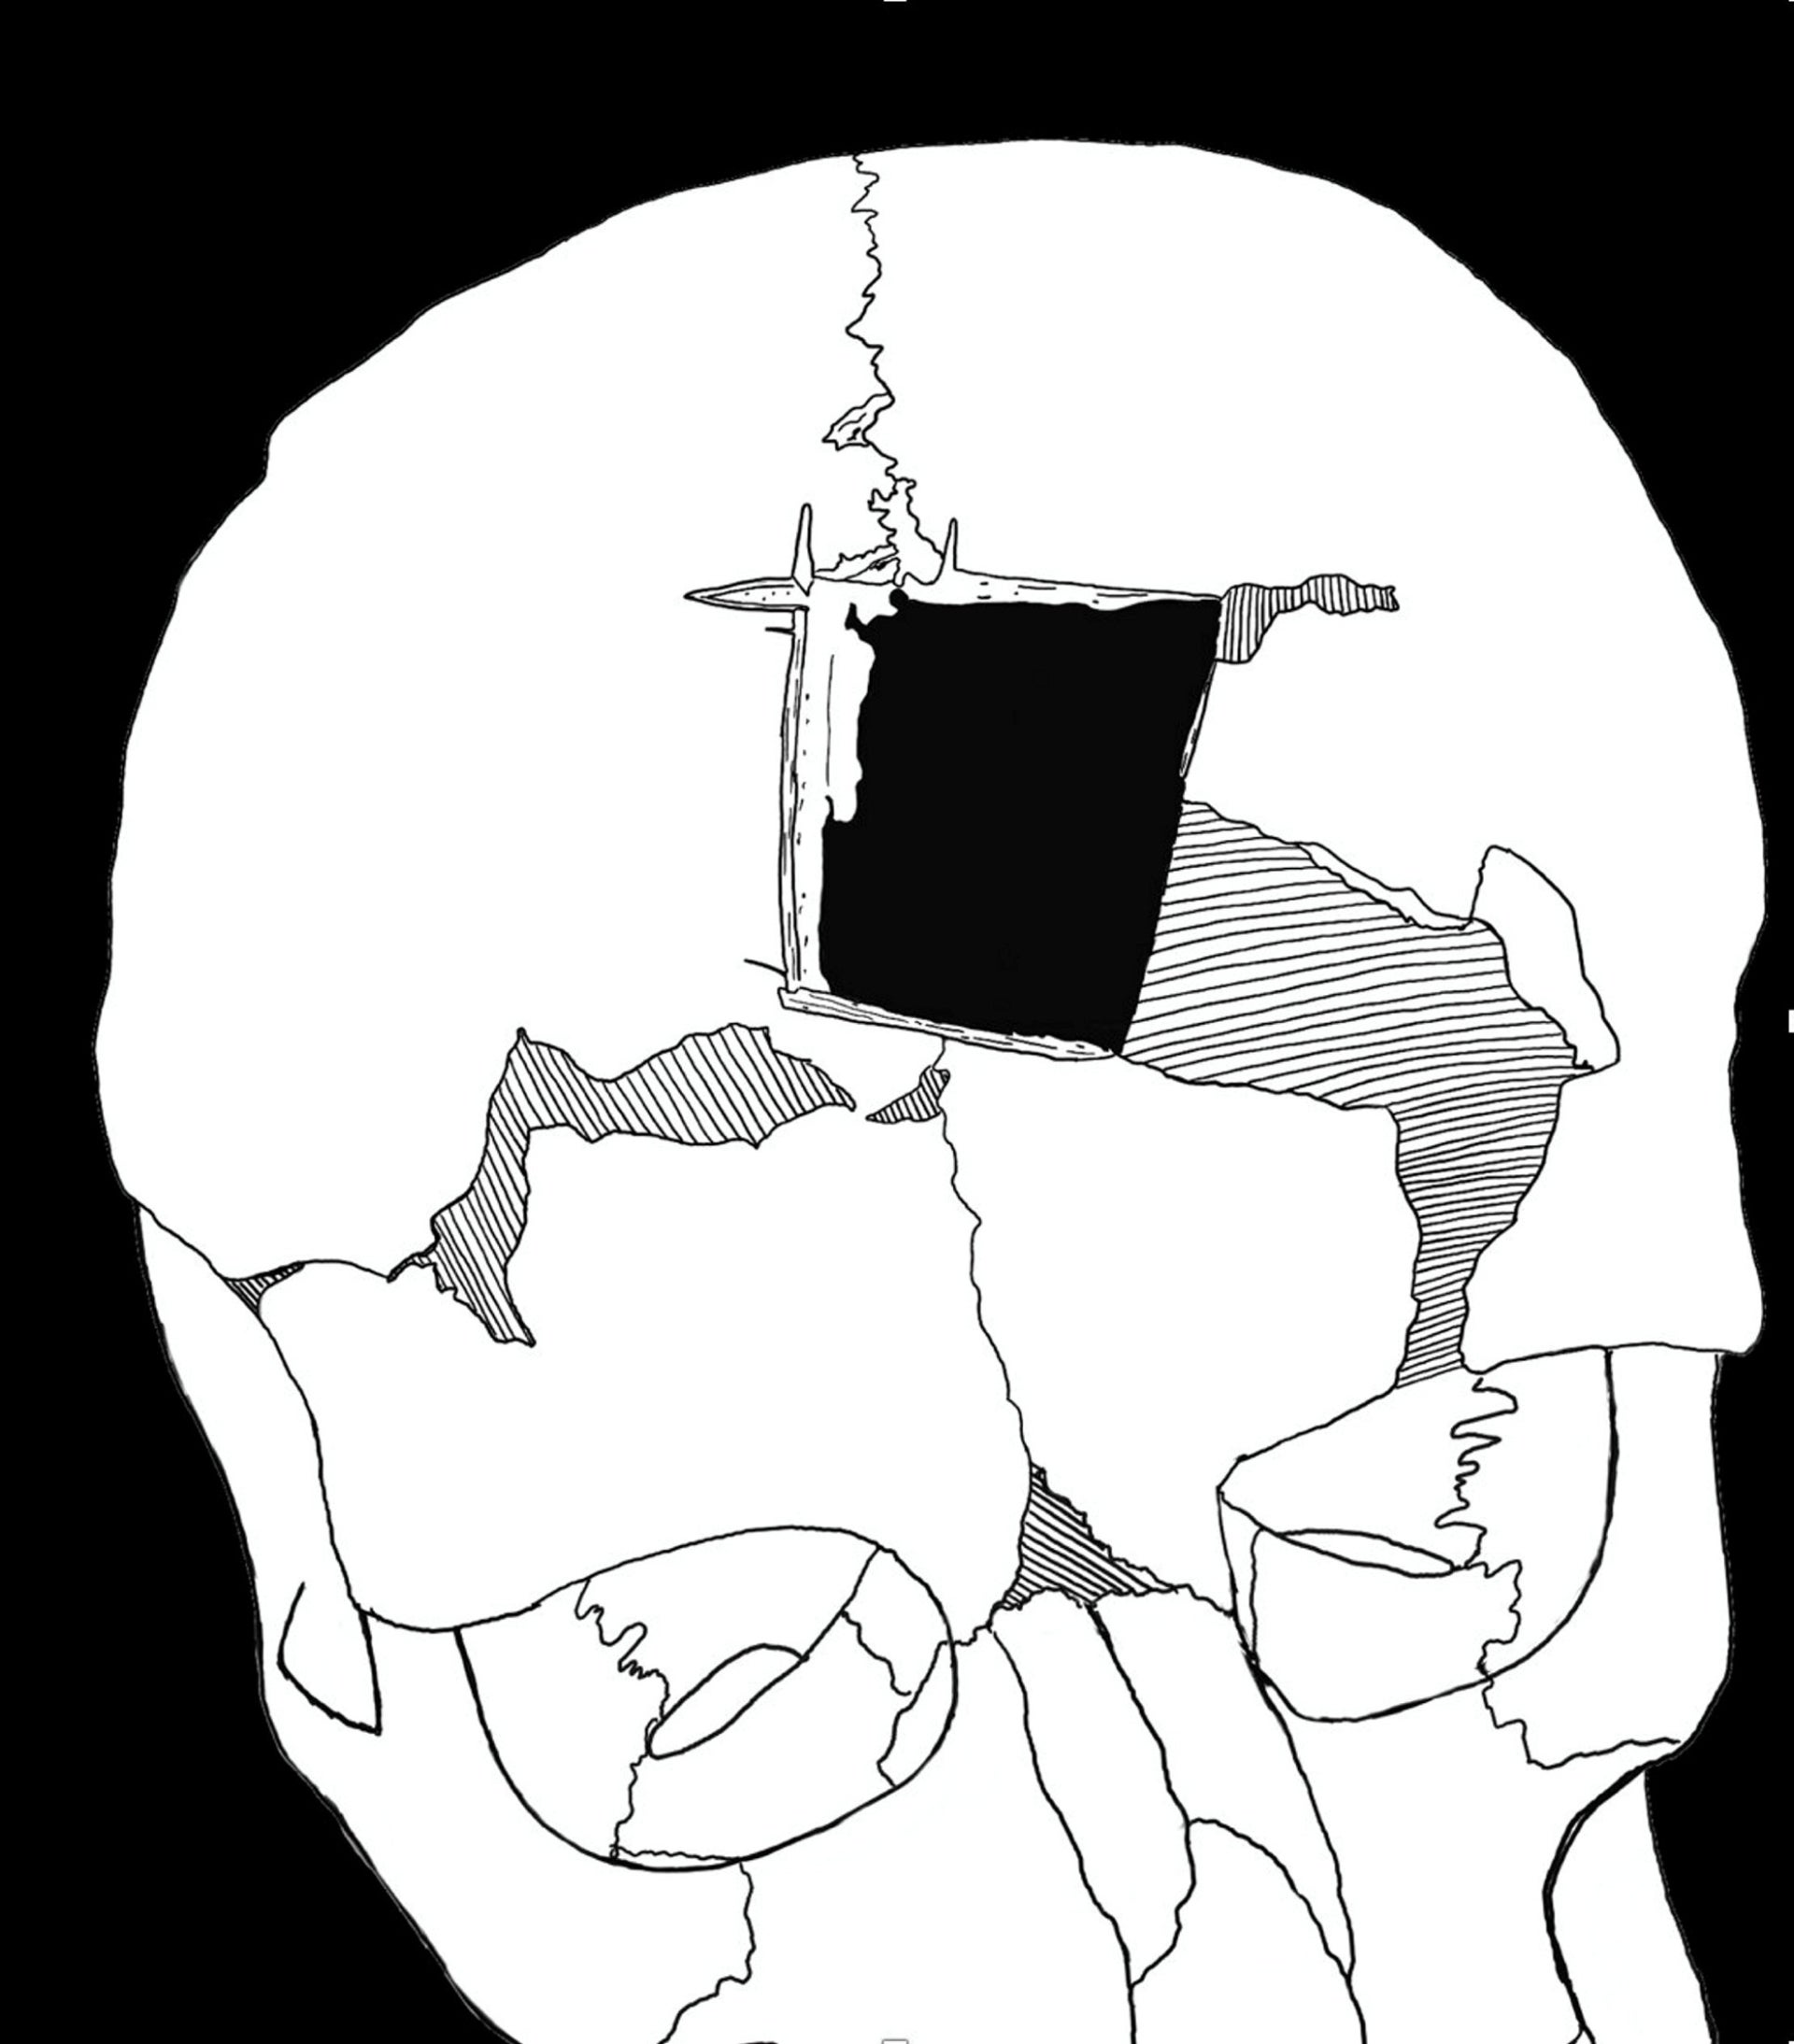 A sketch reconstructing how the trephinated skull found in Megiddo looked